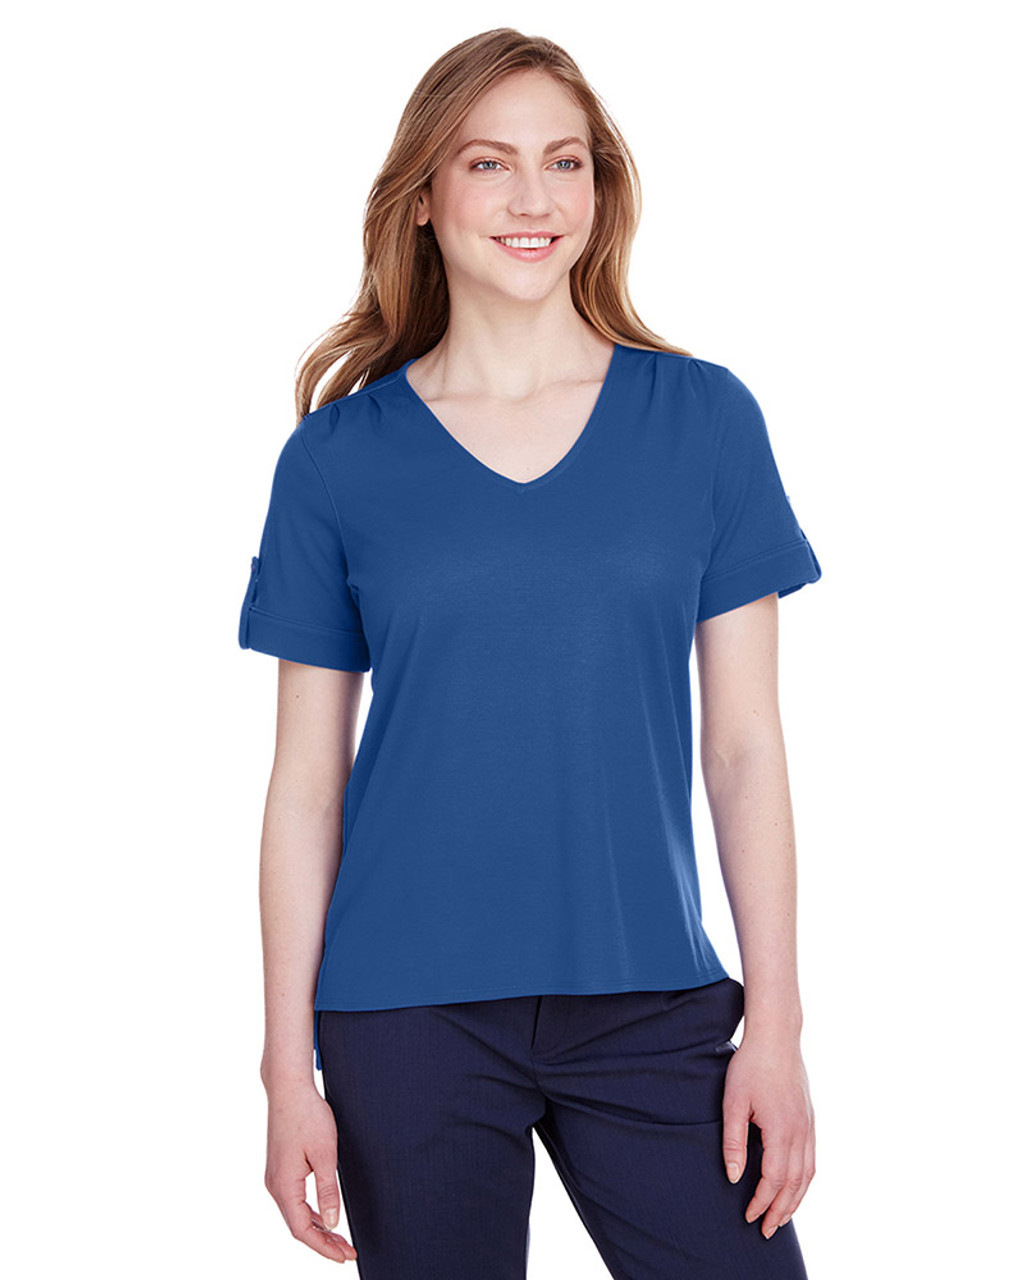 True Royal - DG20WB Devon & Jones Ladies' CrownLux Performance™ Plaited Rolled-Sleeve Top | Blankclothing.ca